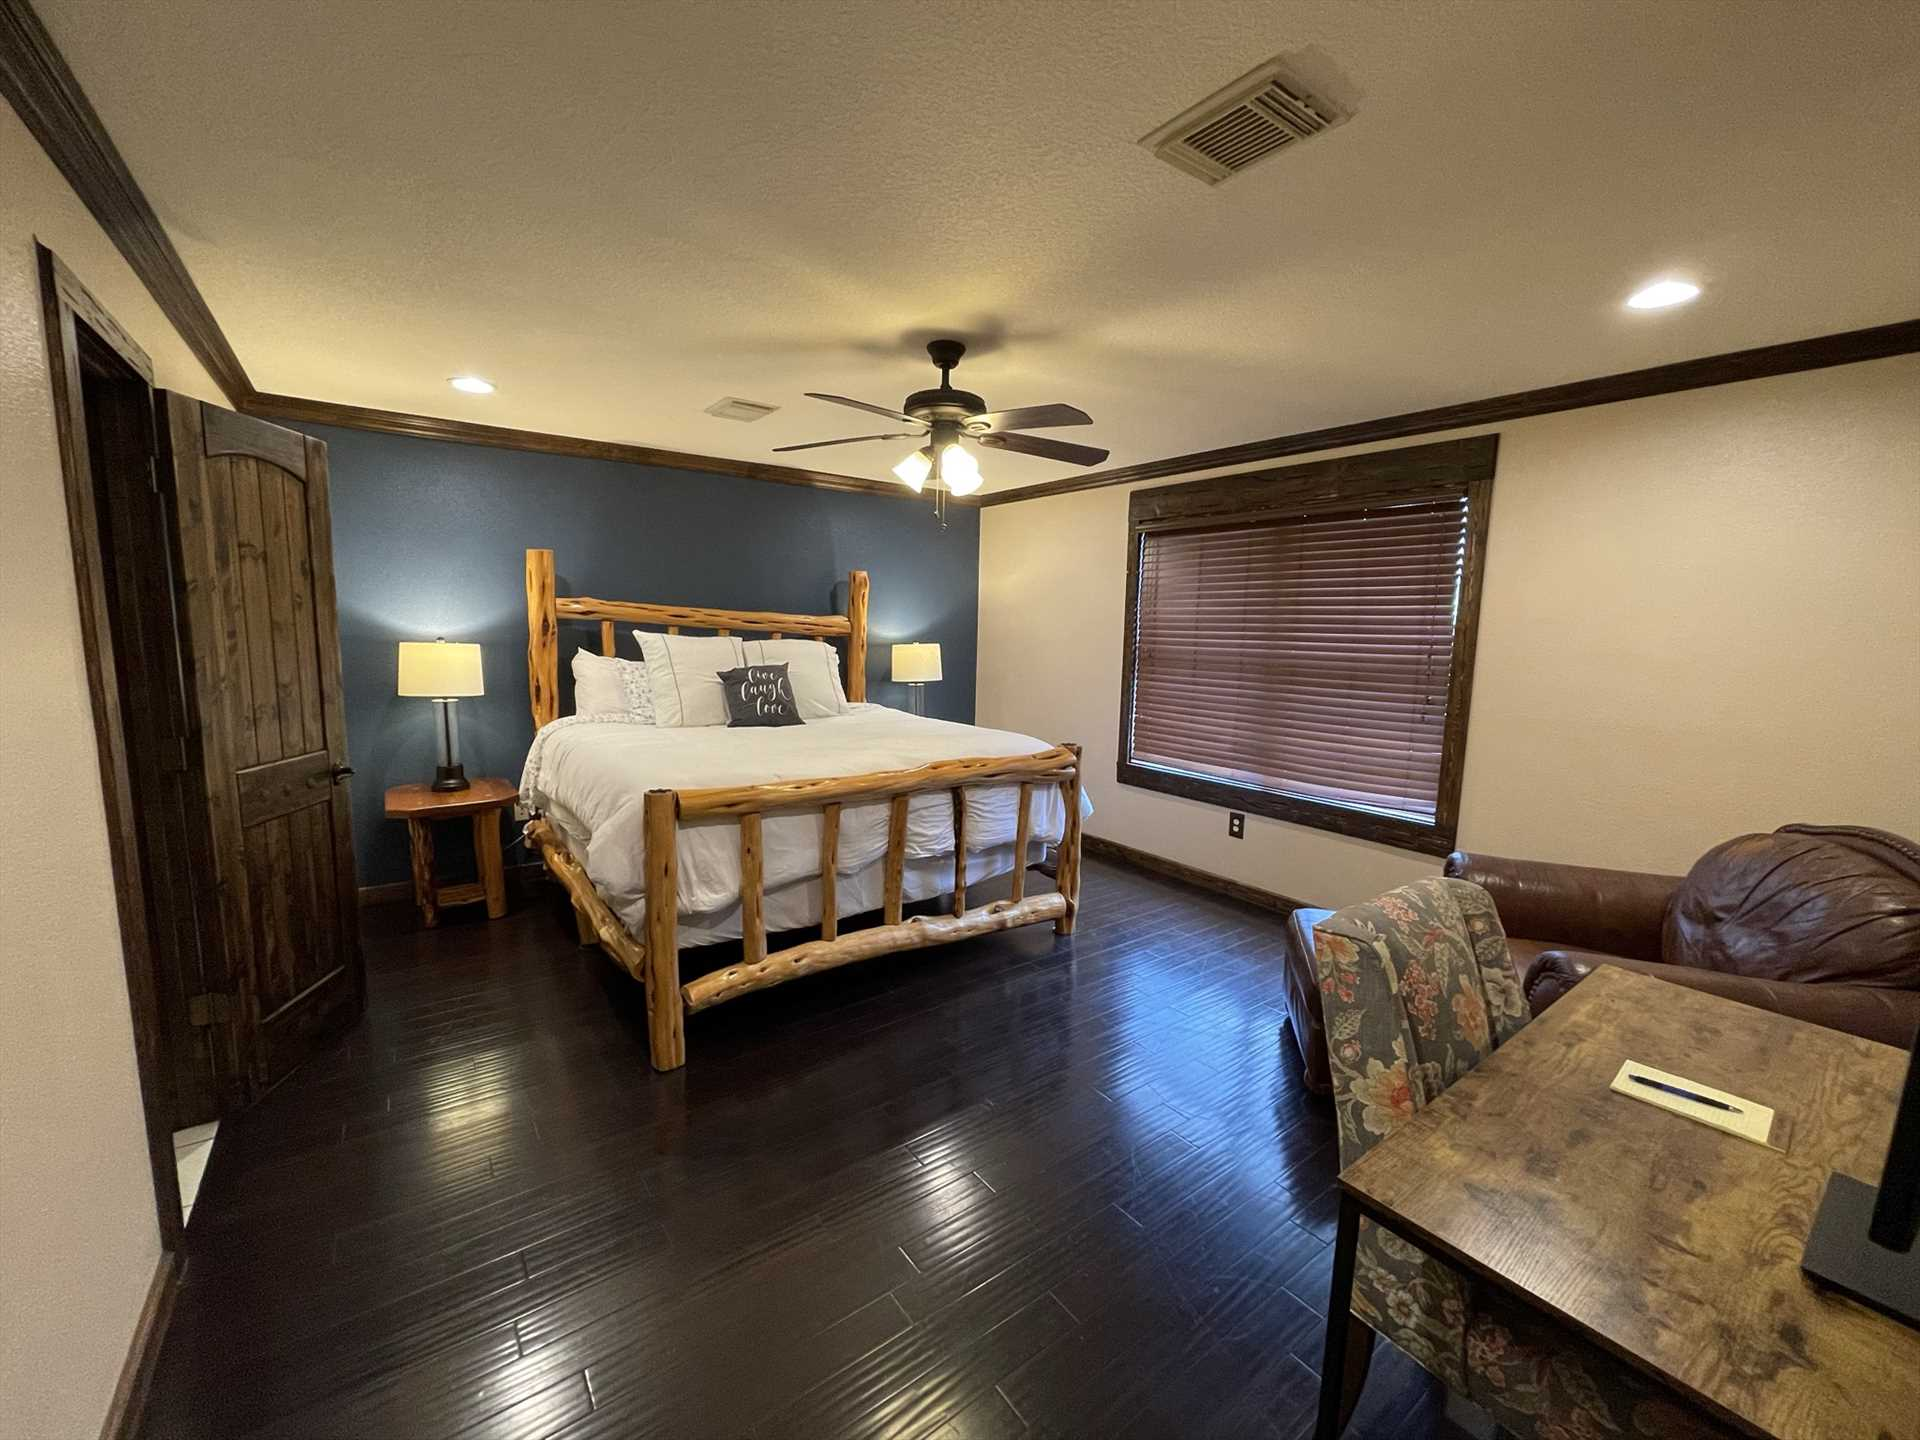 All four bedrooms at the retreat provide not only privacy and restful sleep, but plush and comfy bed linens are included, too.